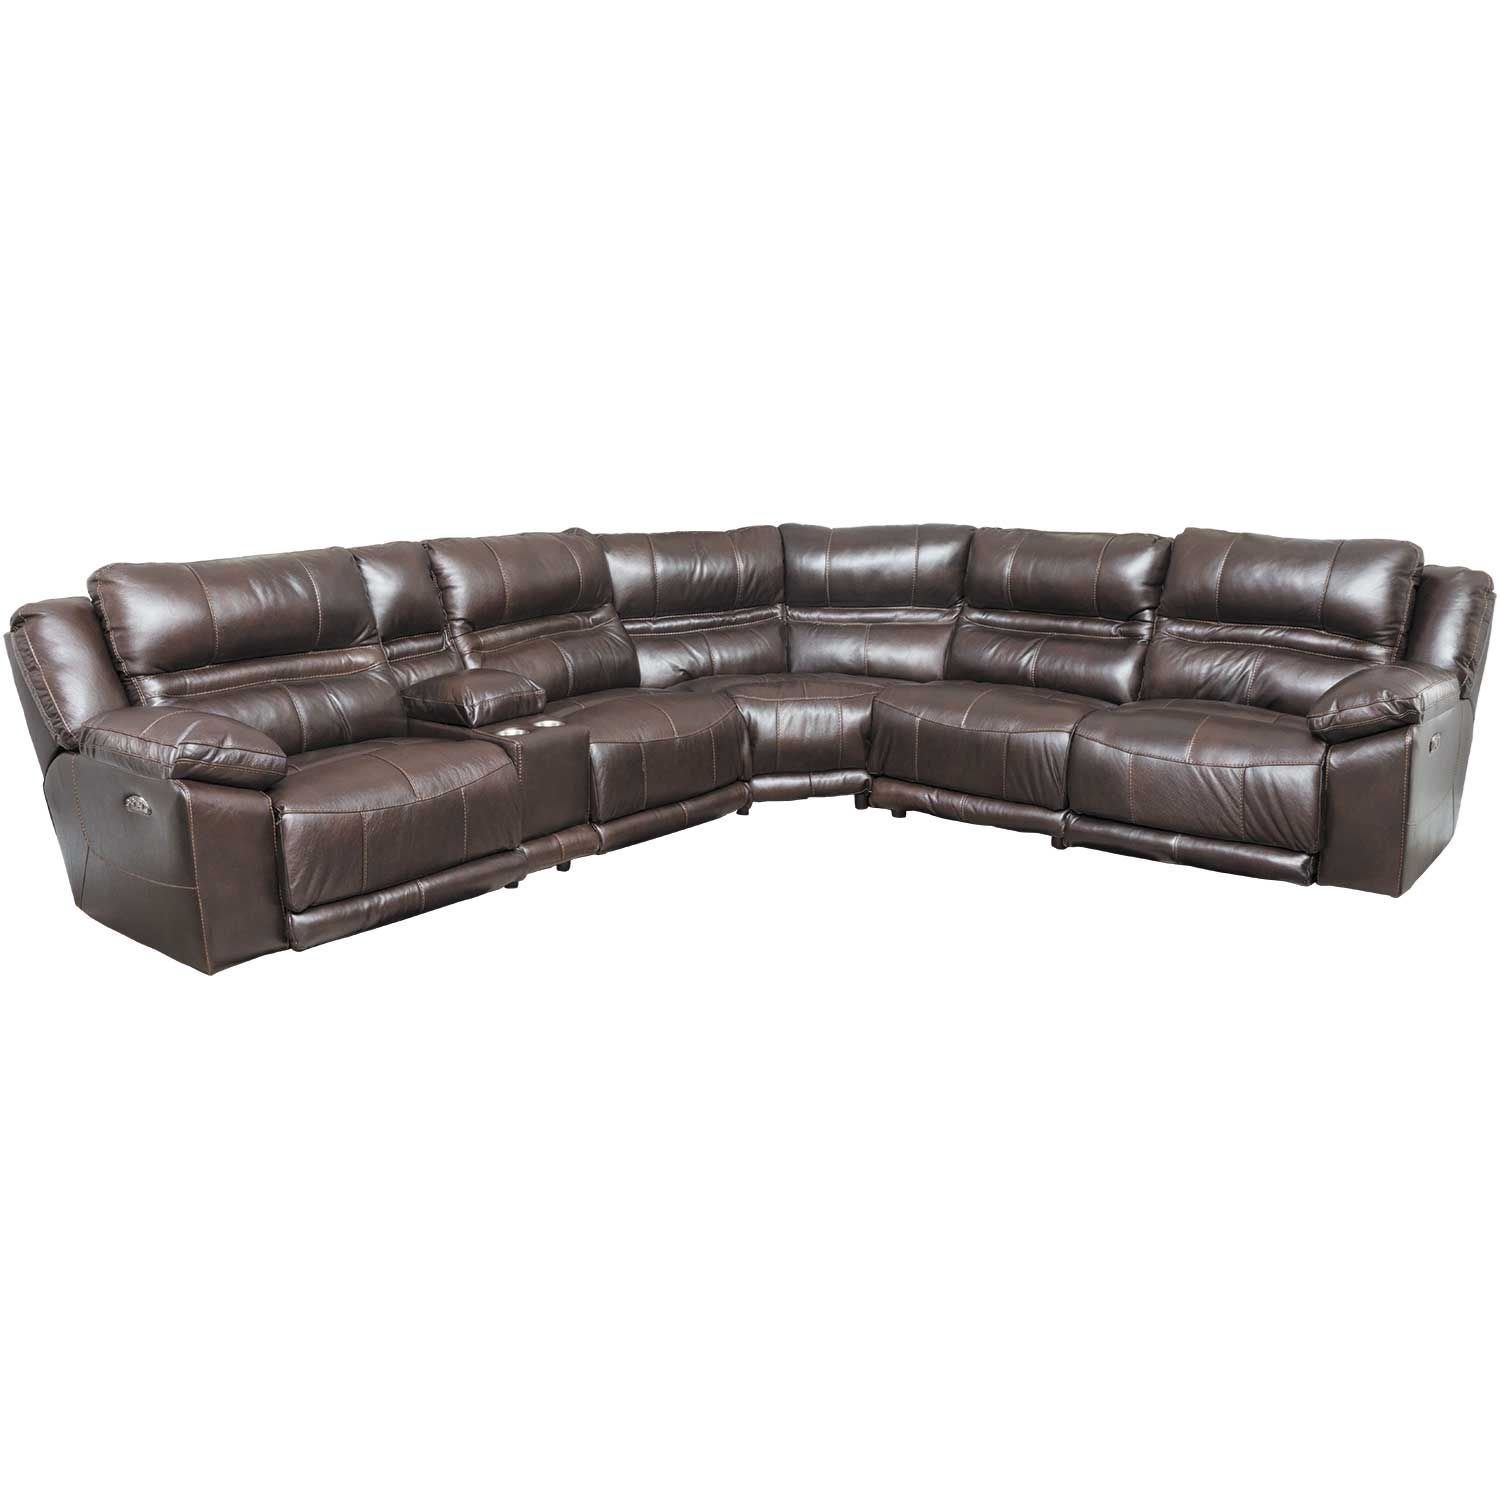 Bergamo 6 Piece Power Reclining Sectional W/ Adjustable Headrest throughout Jackson 6 Piece Power Reclining Sectionals With  Sleeper (Image 2 of 30)